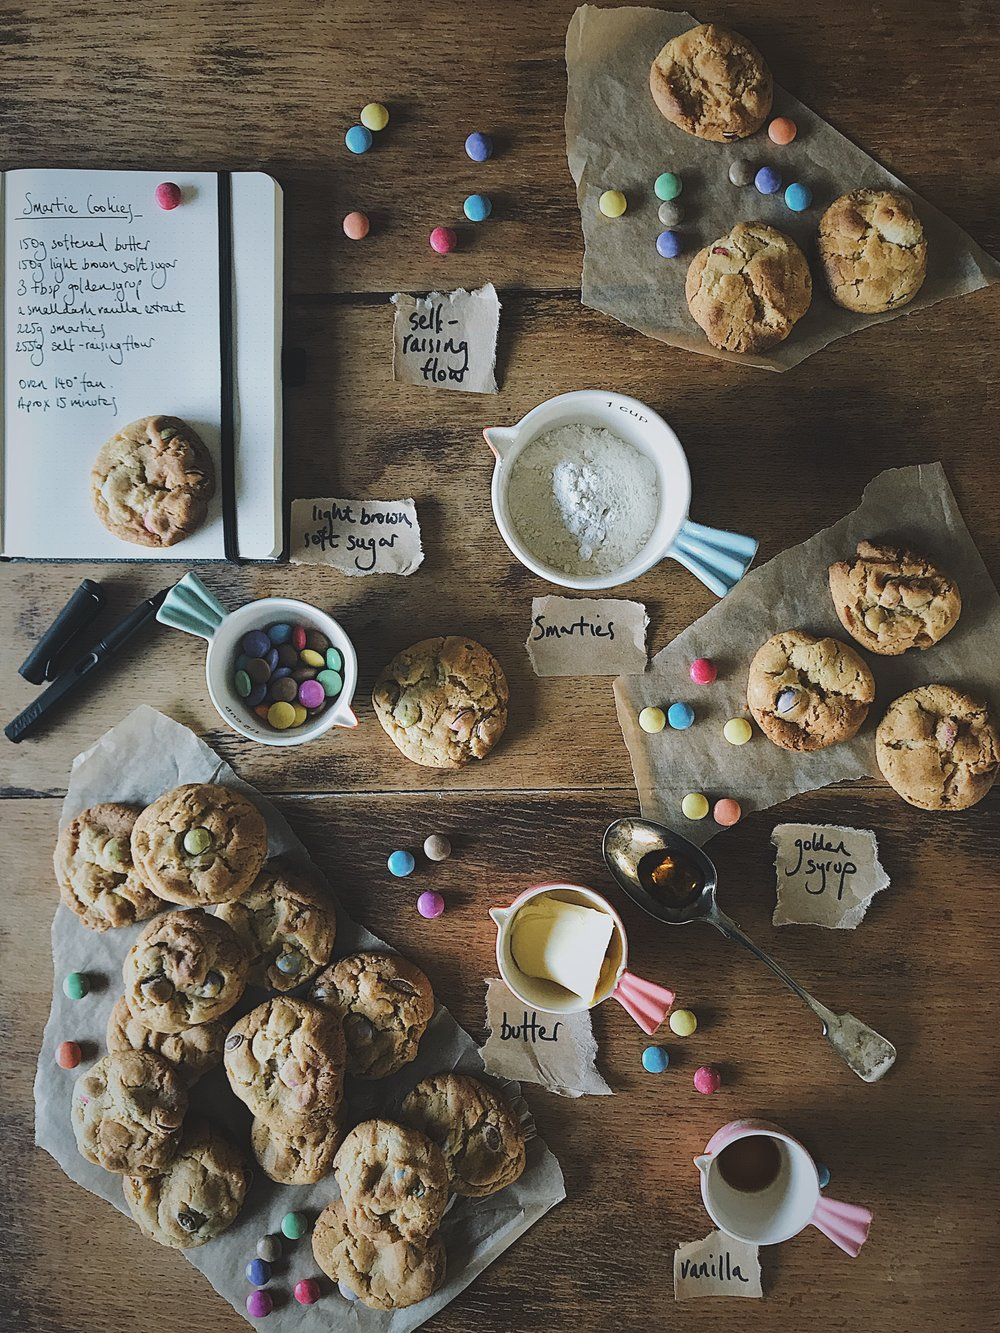 a simple and tasty recipe for smartie cookies. Great for children's parties or just for comfort.